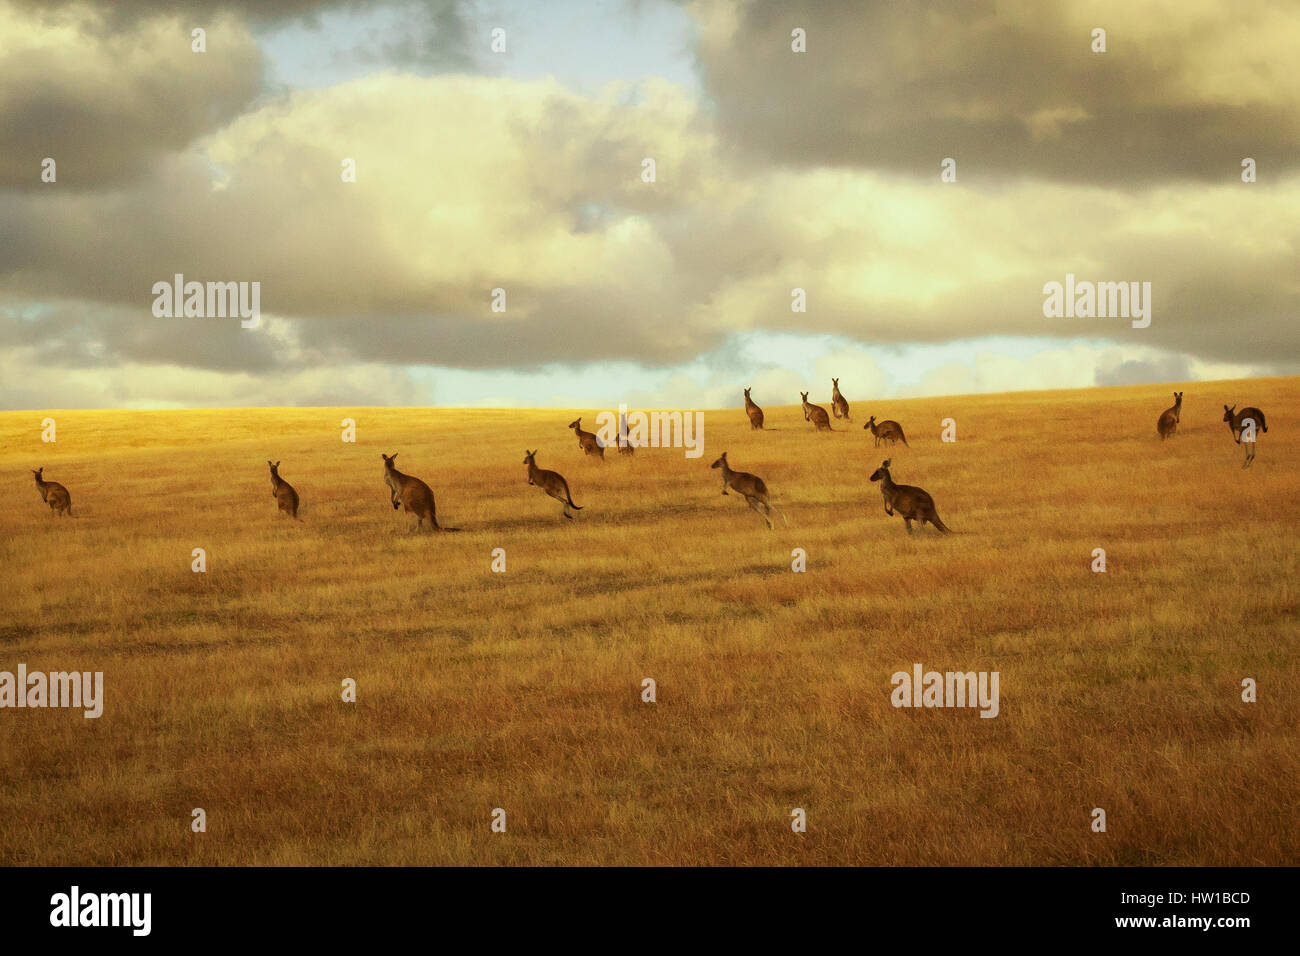 Western-gris kangourou (Macropus fuliginosus) Photo Stock